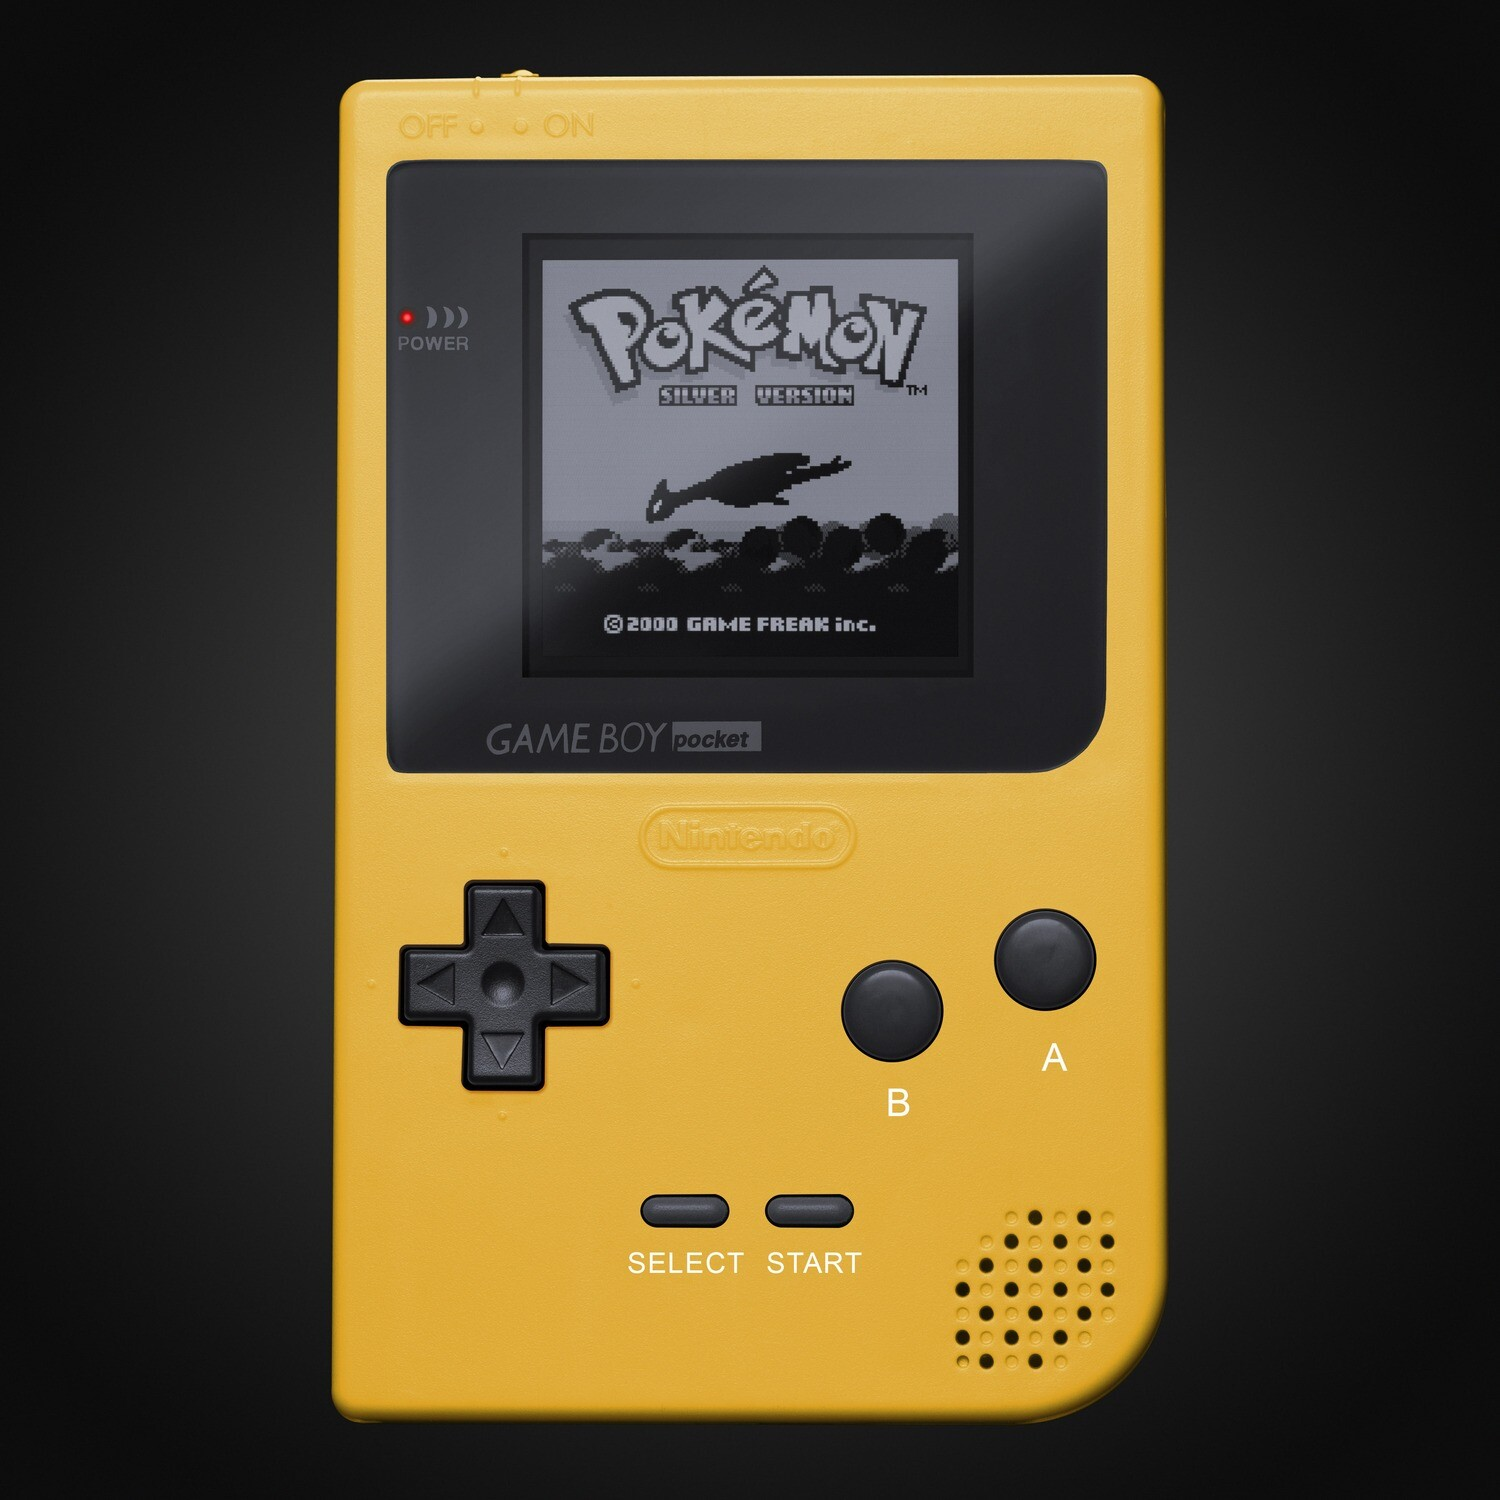 Game Boy Pocket: Prestige Edition (Yellow)